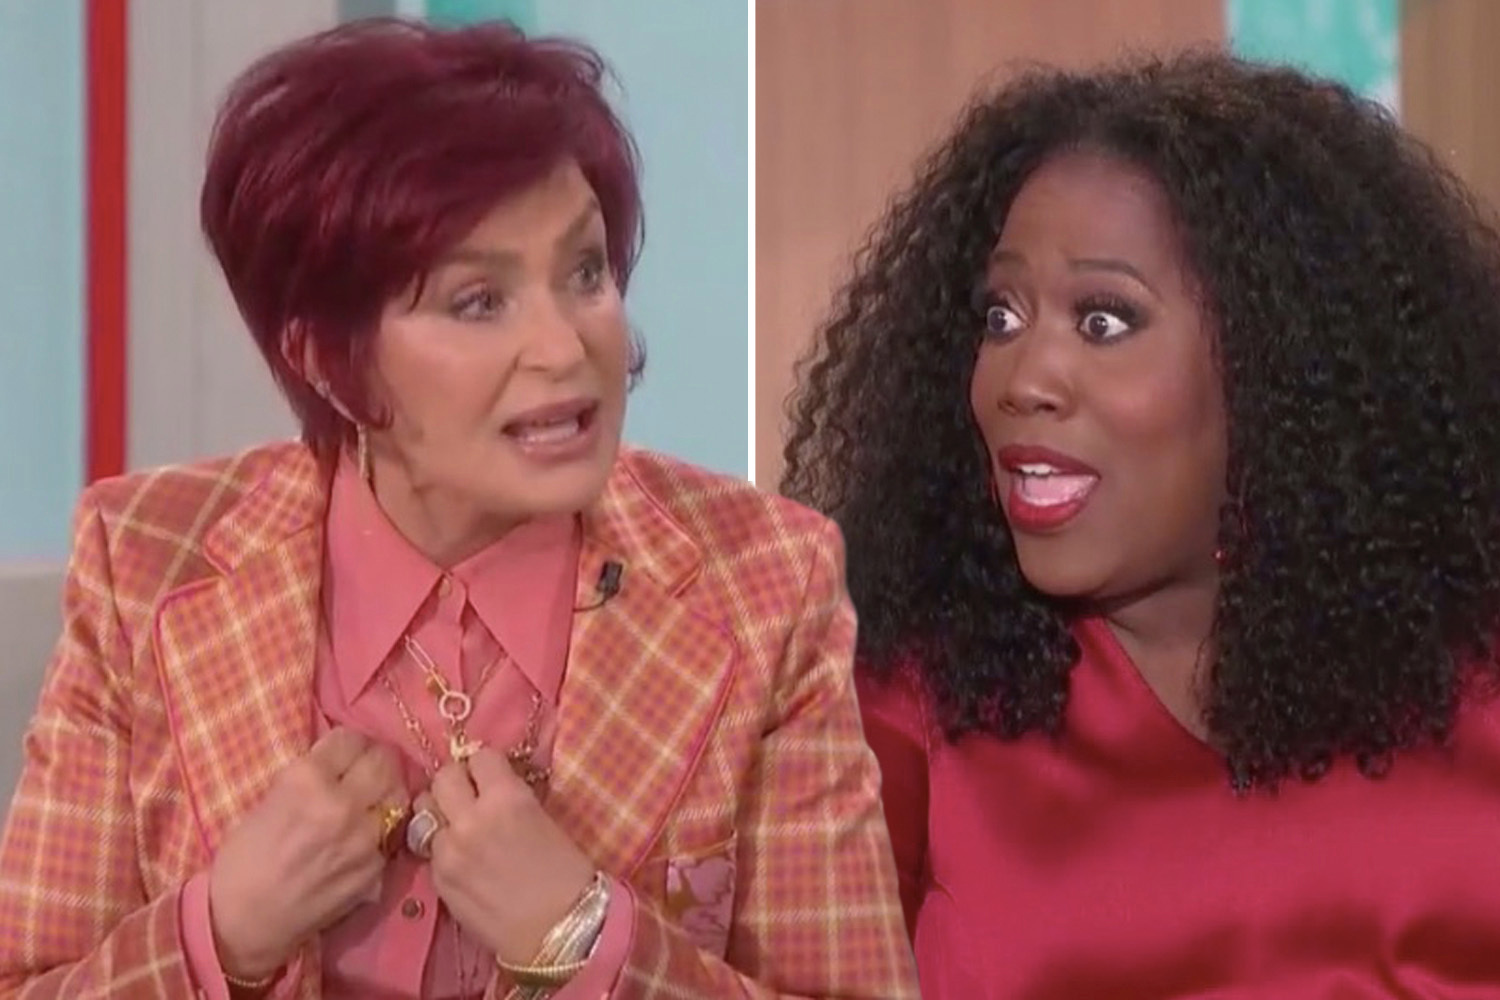 Sharon Osbourne Apologizes To The Black Community After Explosive Outburst During Race Debate Fuelled By Her Support Of Piers Morgan That Grape Juice